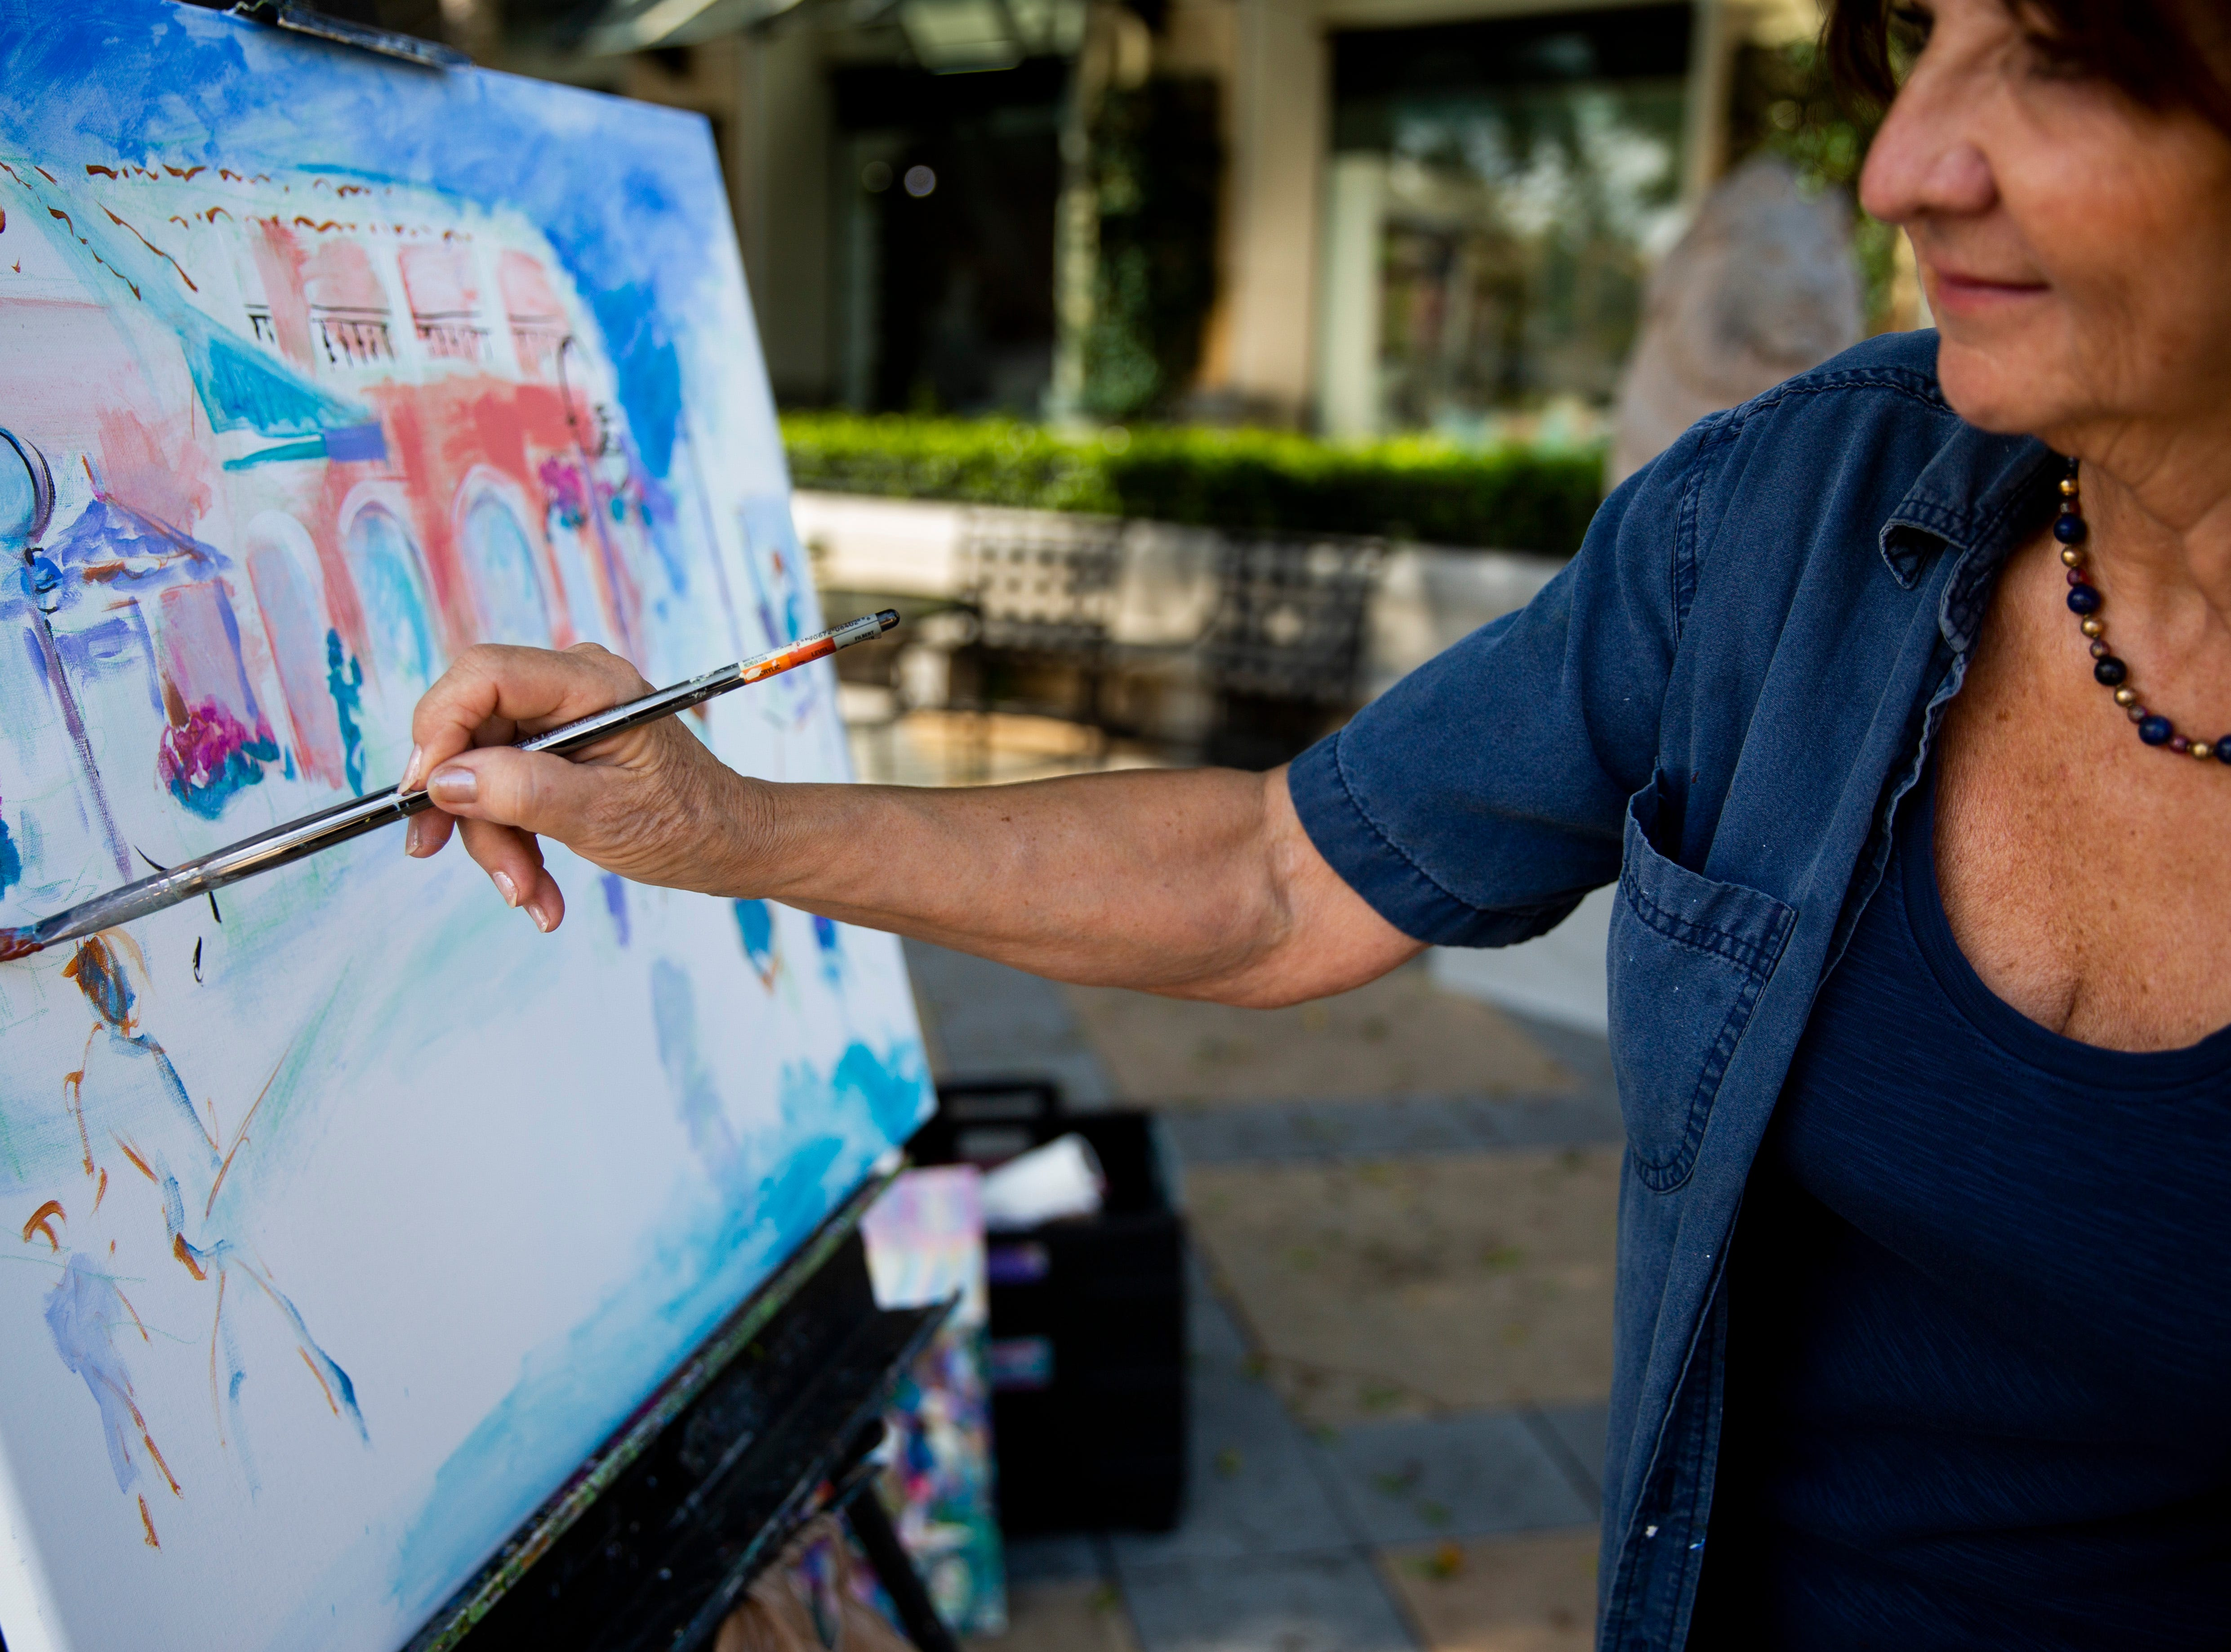 Janine Wesselmann paints during the annual Third on Canvas event on Third Street South in Naples on Sunday, Feb. 17, 2019. Wesselmann has been participating in Third on Canvas for the past 11 years.